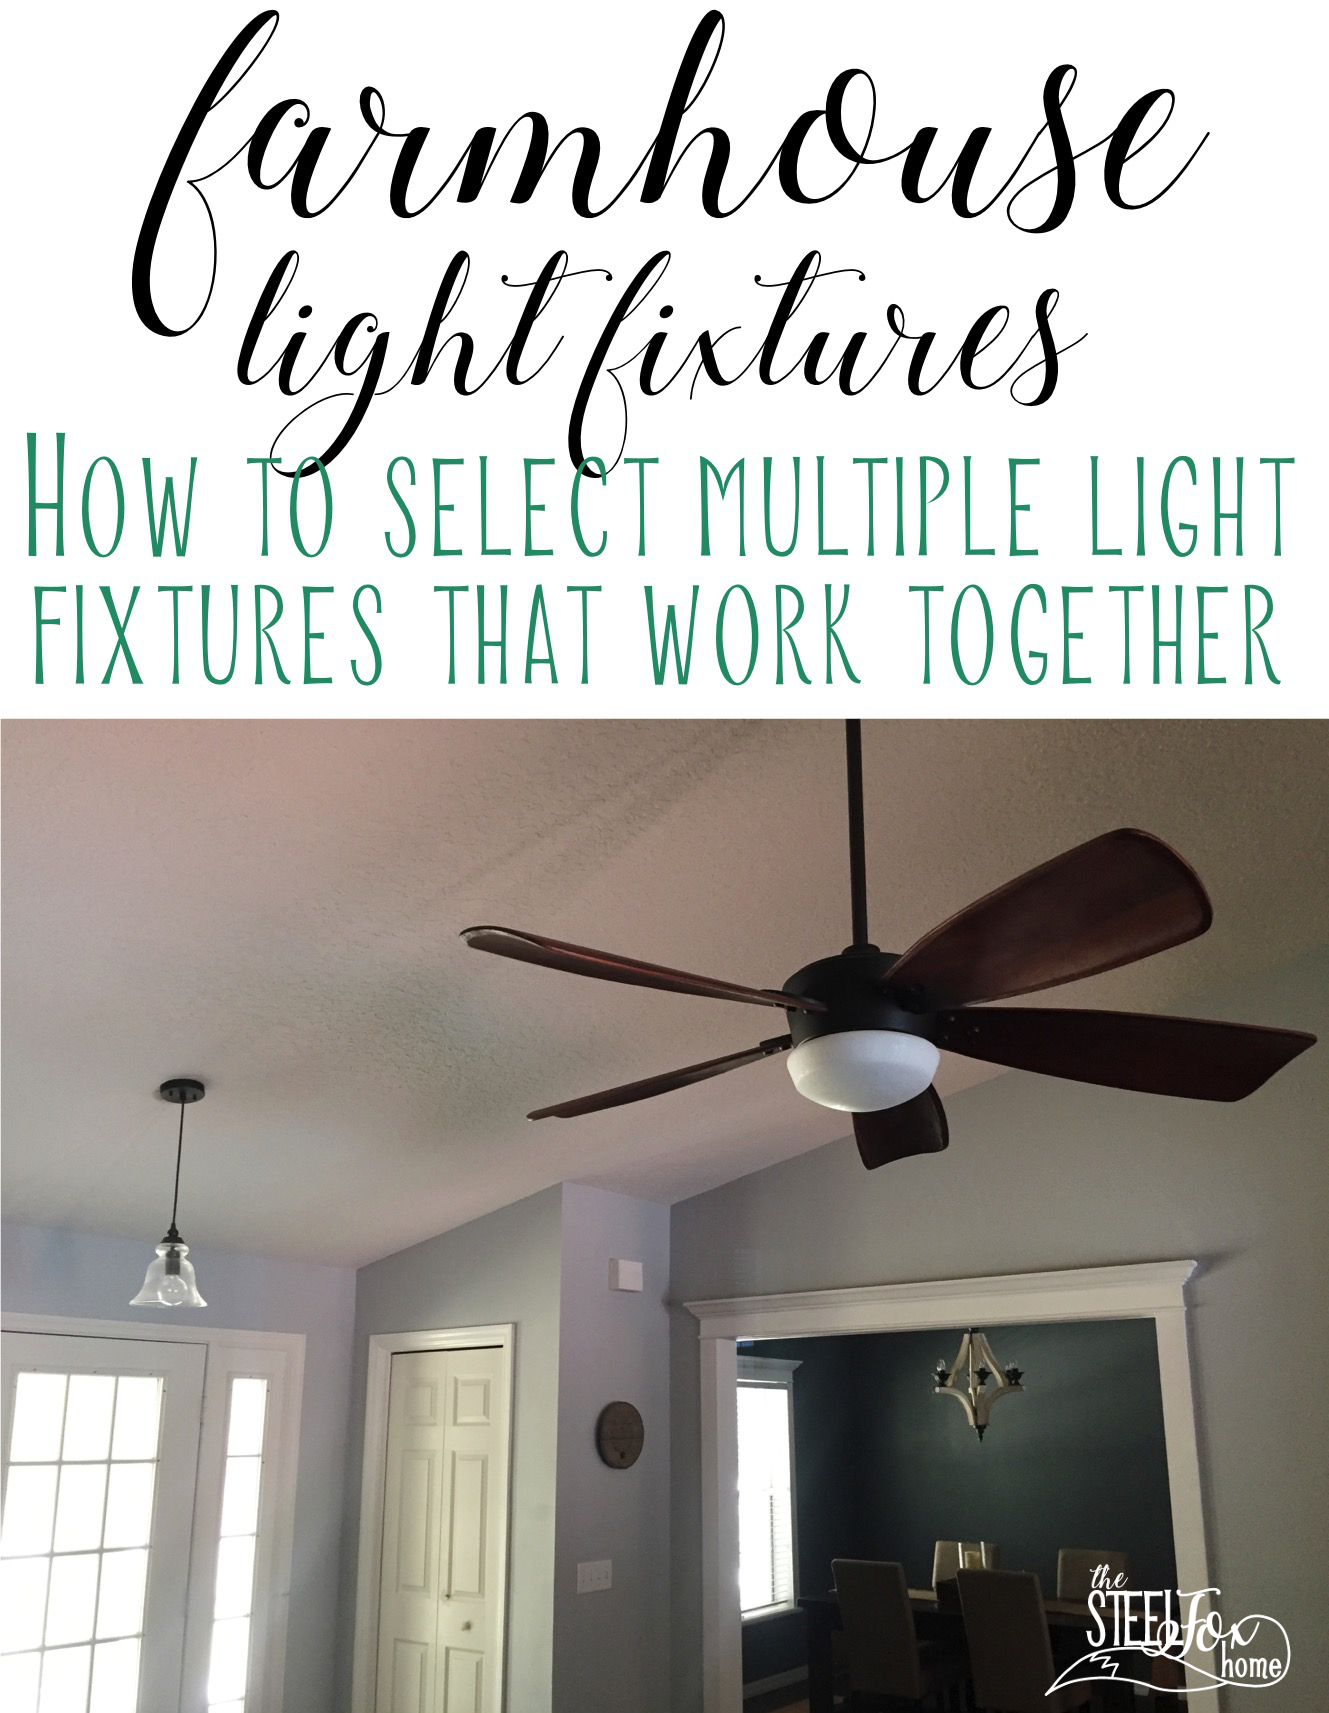 Let There Be Light Keeping light fixtures cohesive when you re